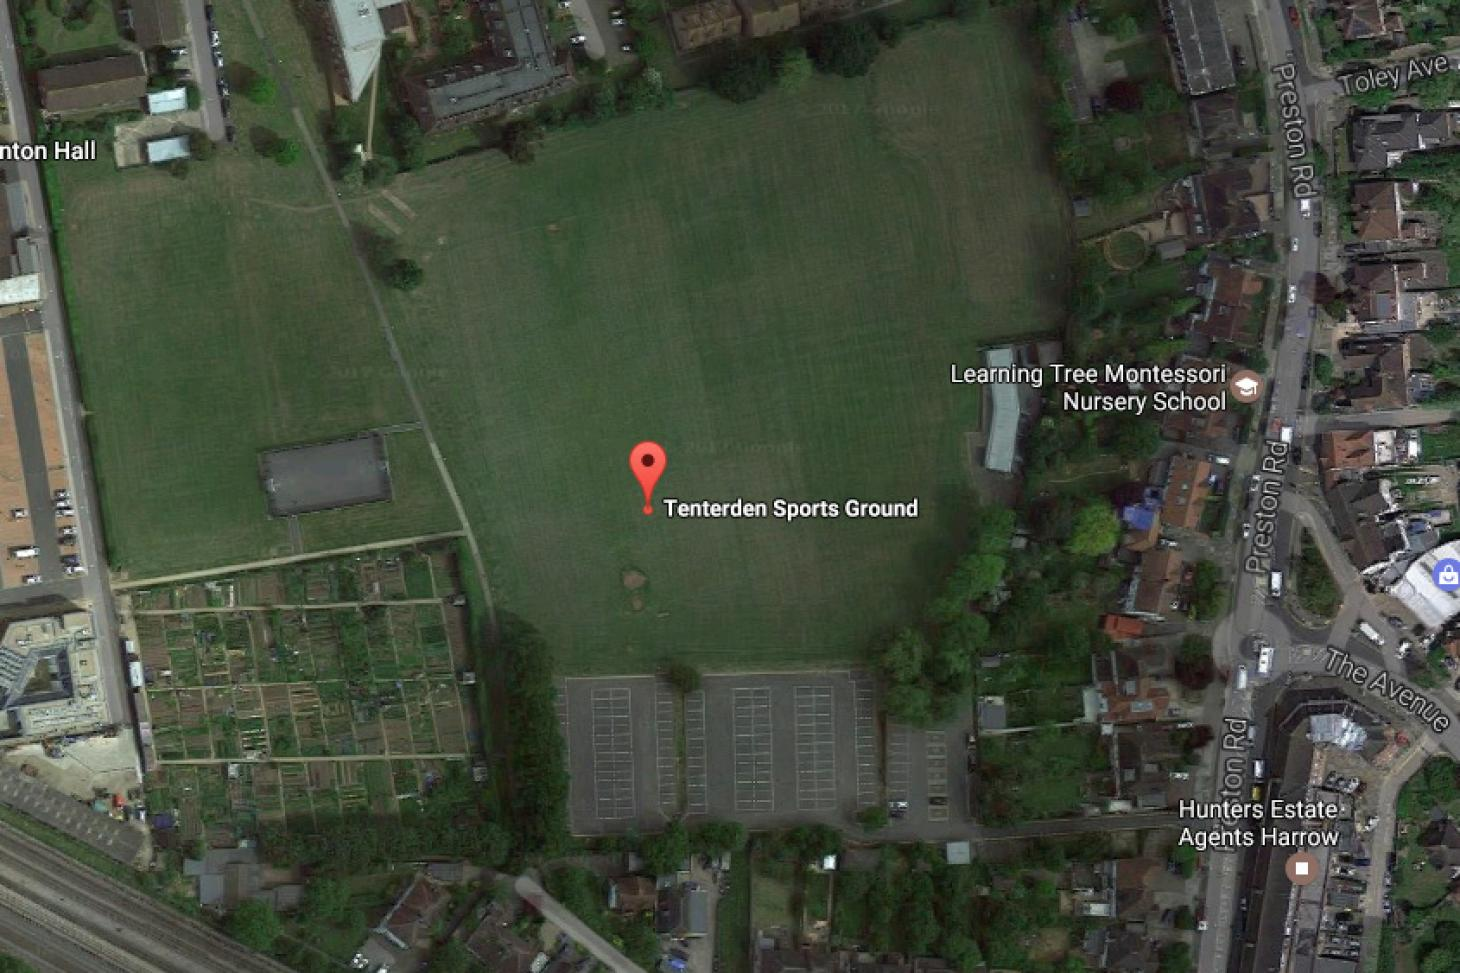 Tenterden Sports Ground 11 a side | Grass football pitch